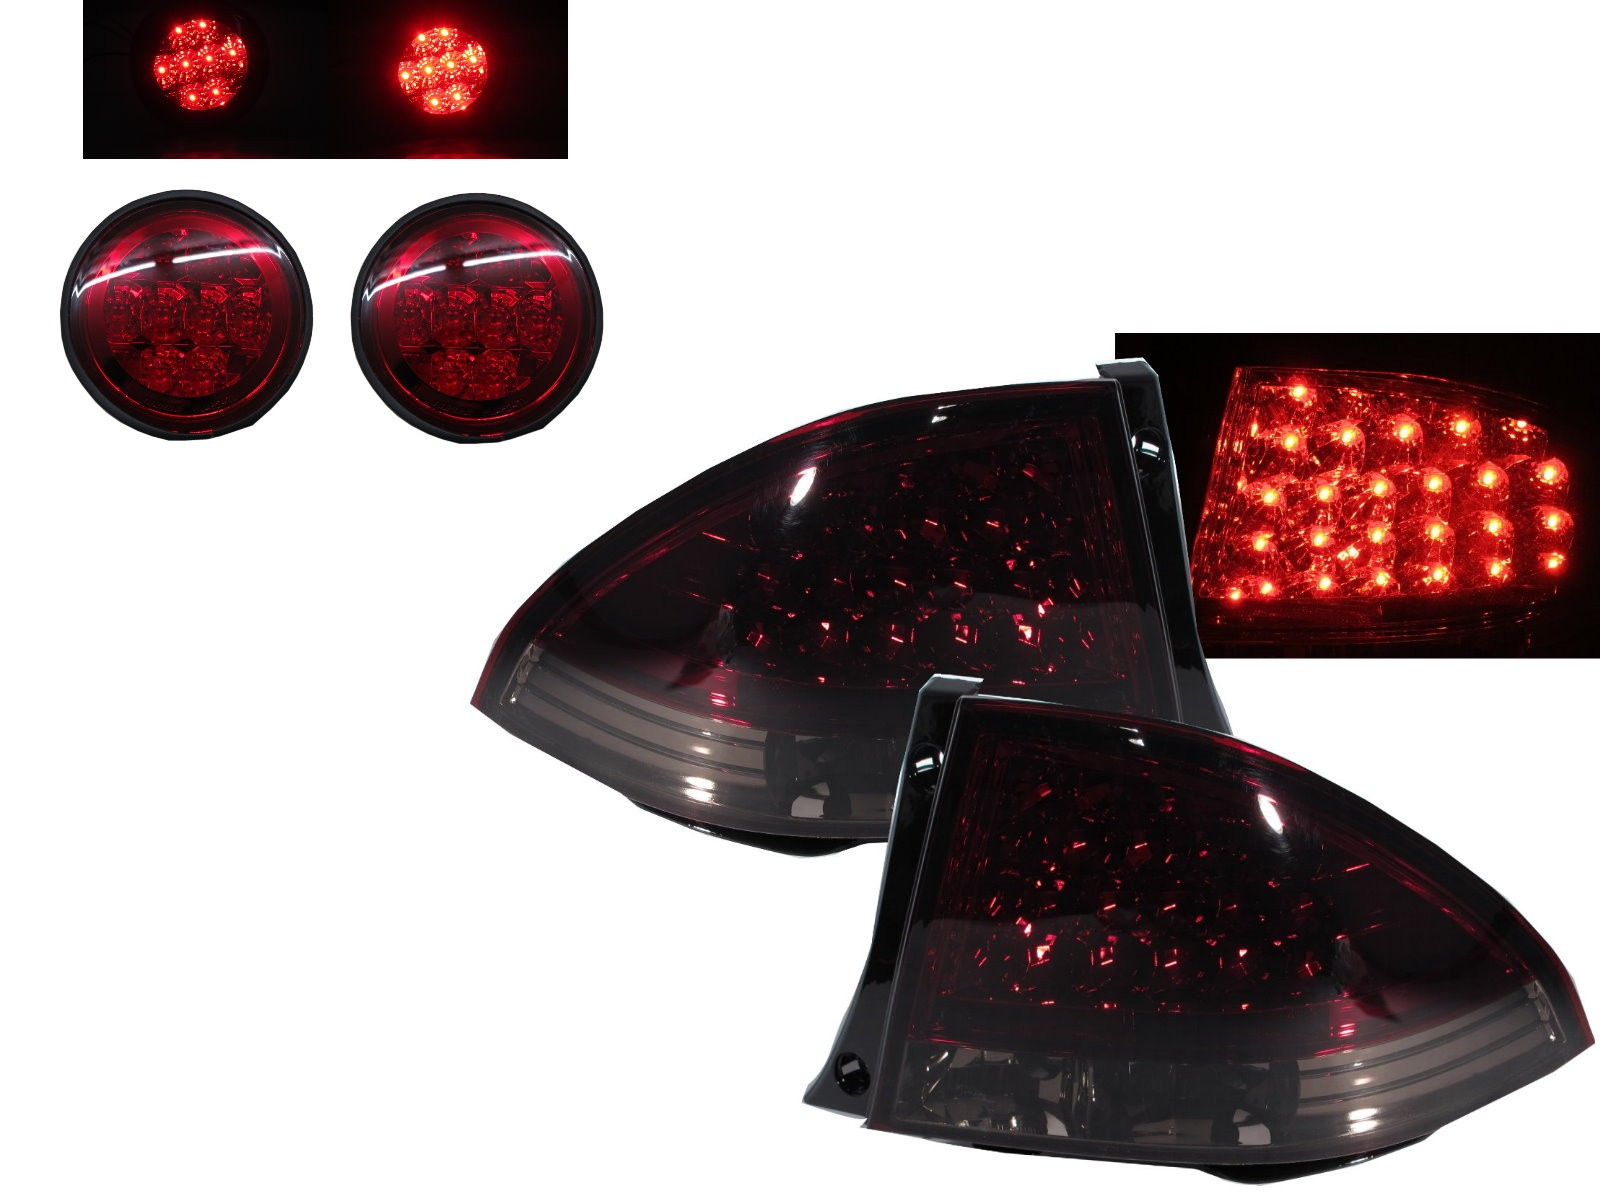 CrazyTheGod Altezza XE10 First generation 1999-2005 Sedan/Hatchback/Wagon 4D/5D LED Tail Rear Light Red/Smoke for TOYOTA